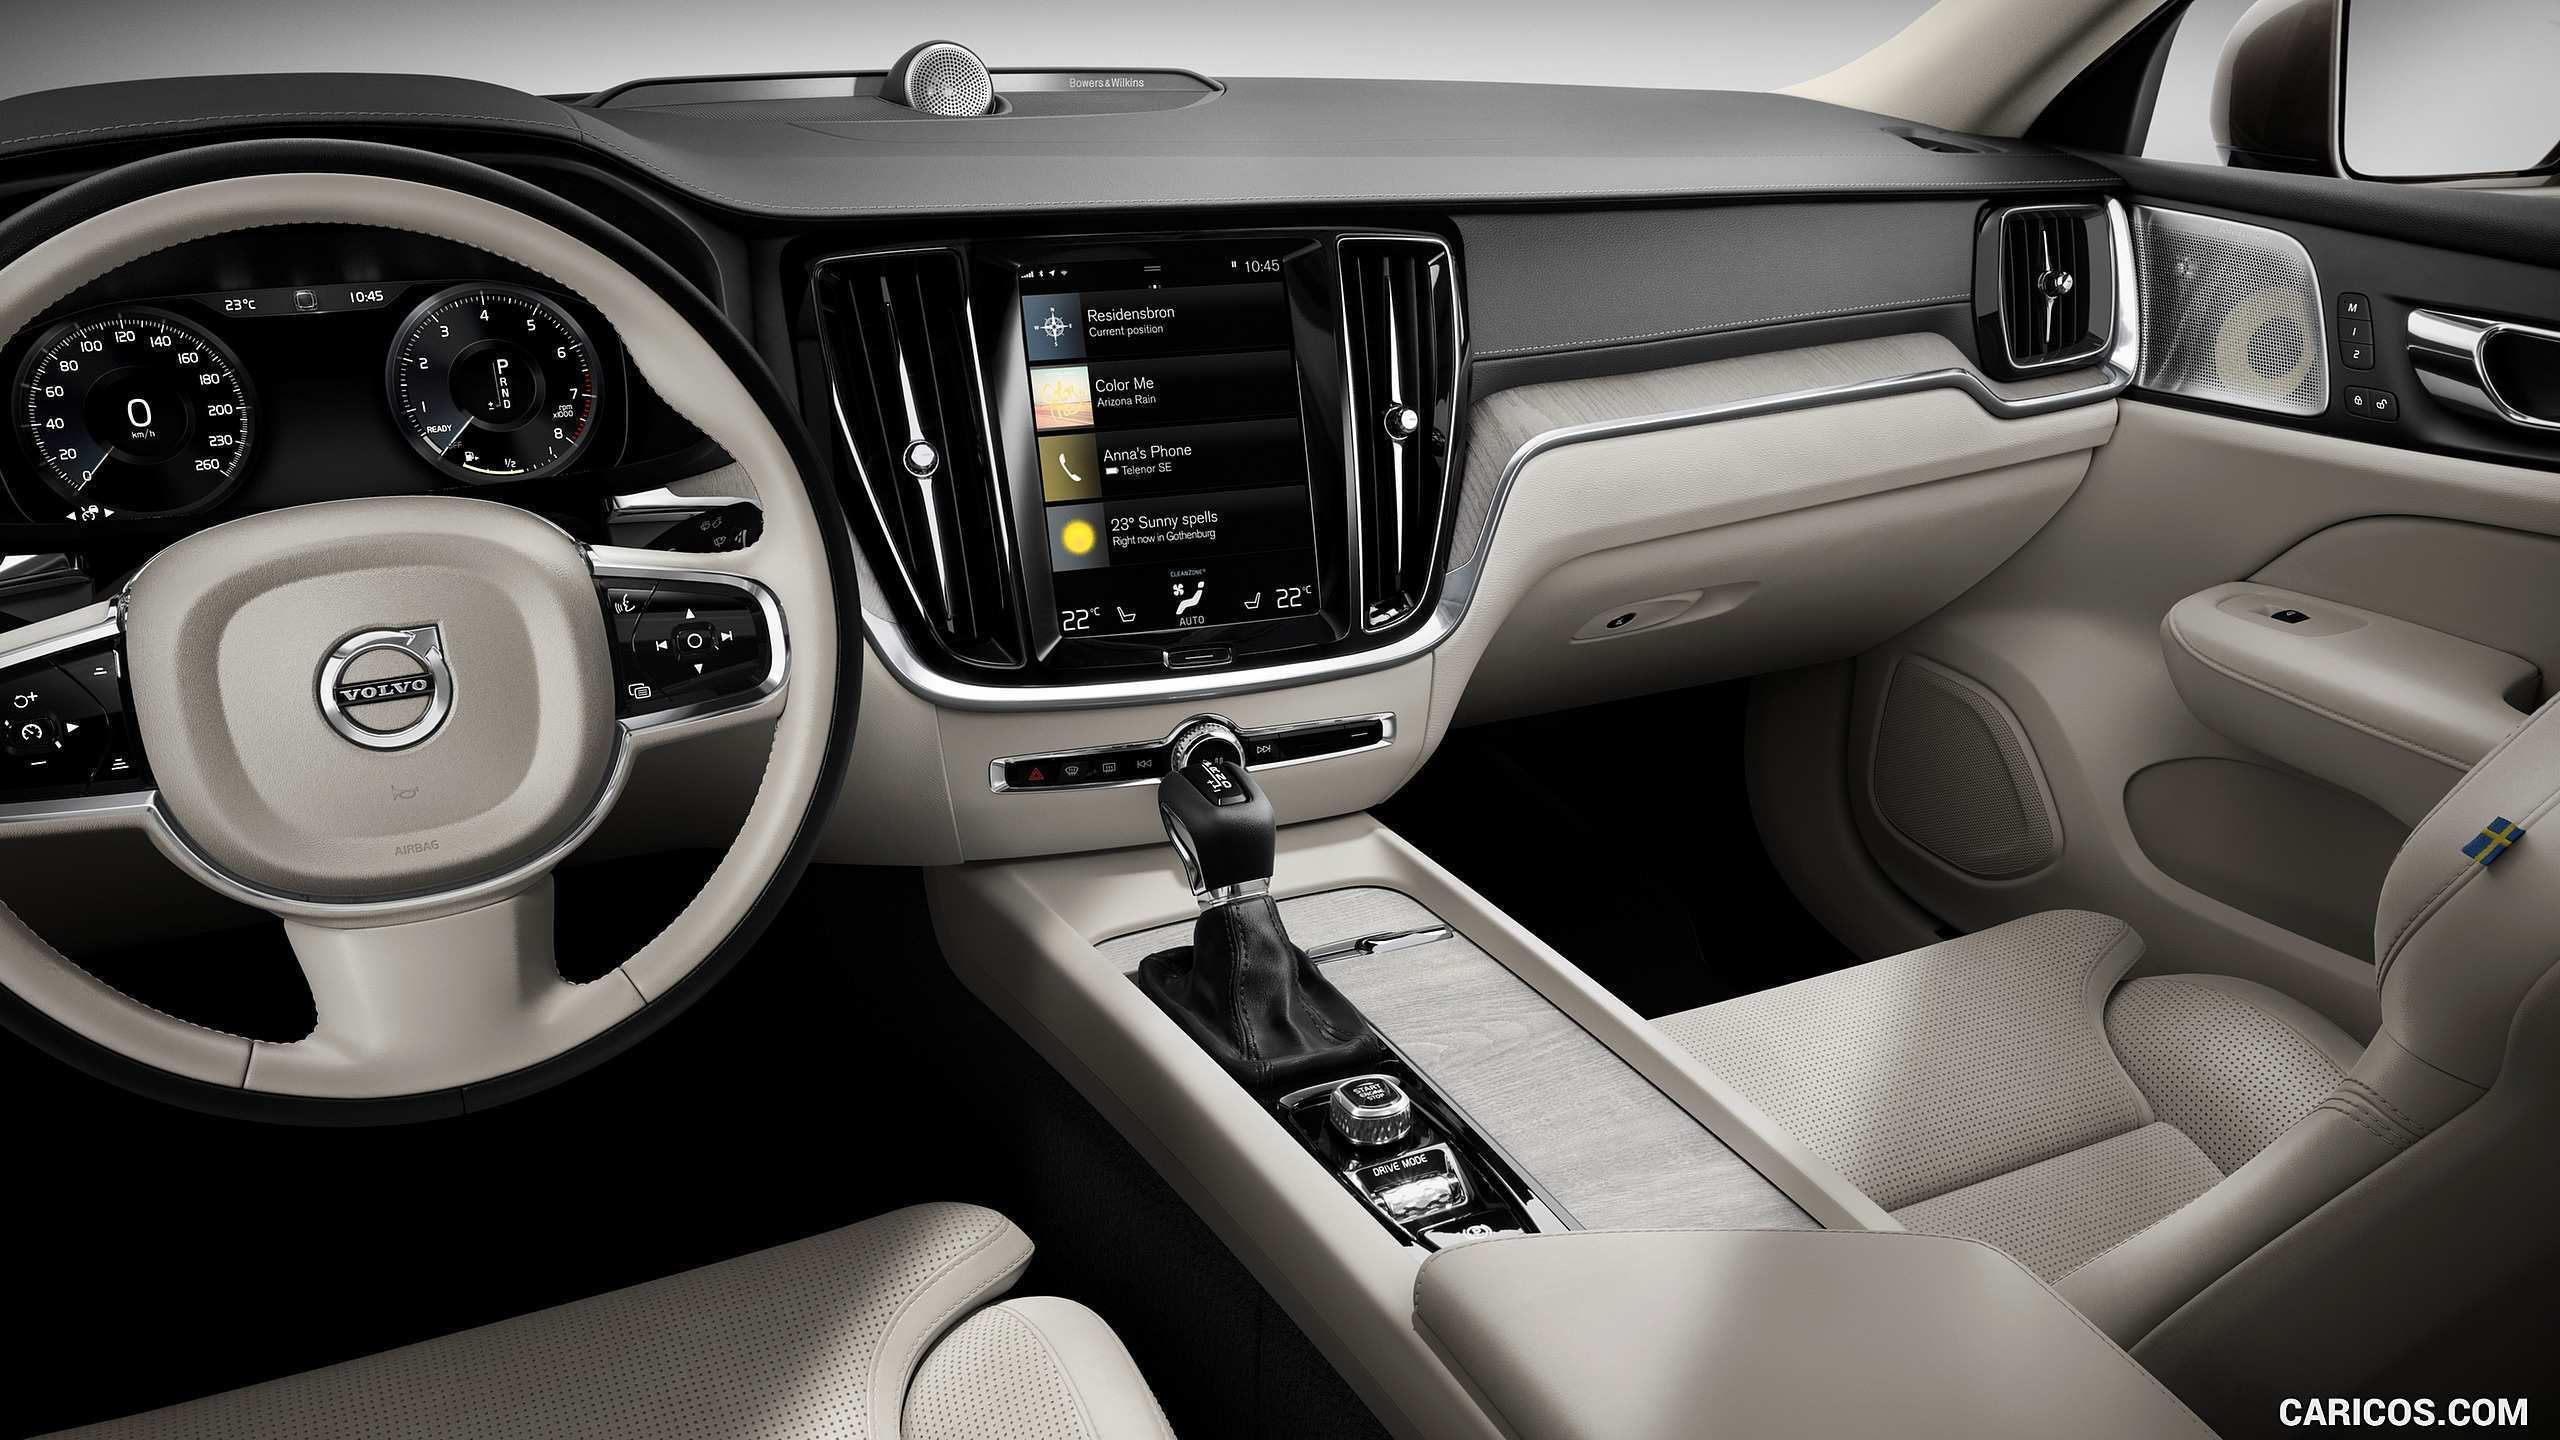 22 All New 2019 Volvo 860 Interior Performance for 2019 Volvo 860 Interior